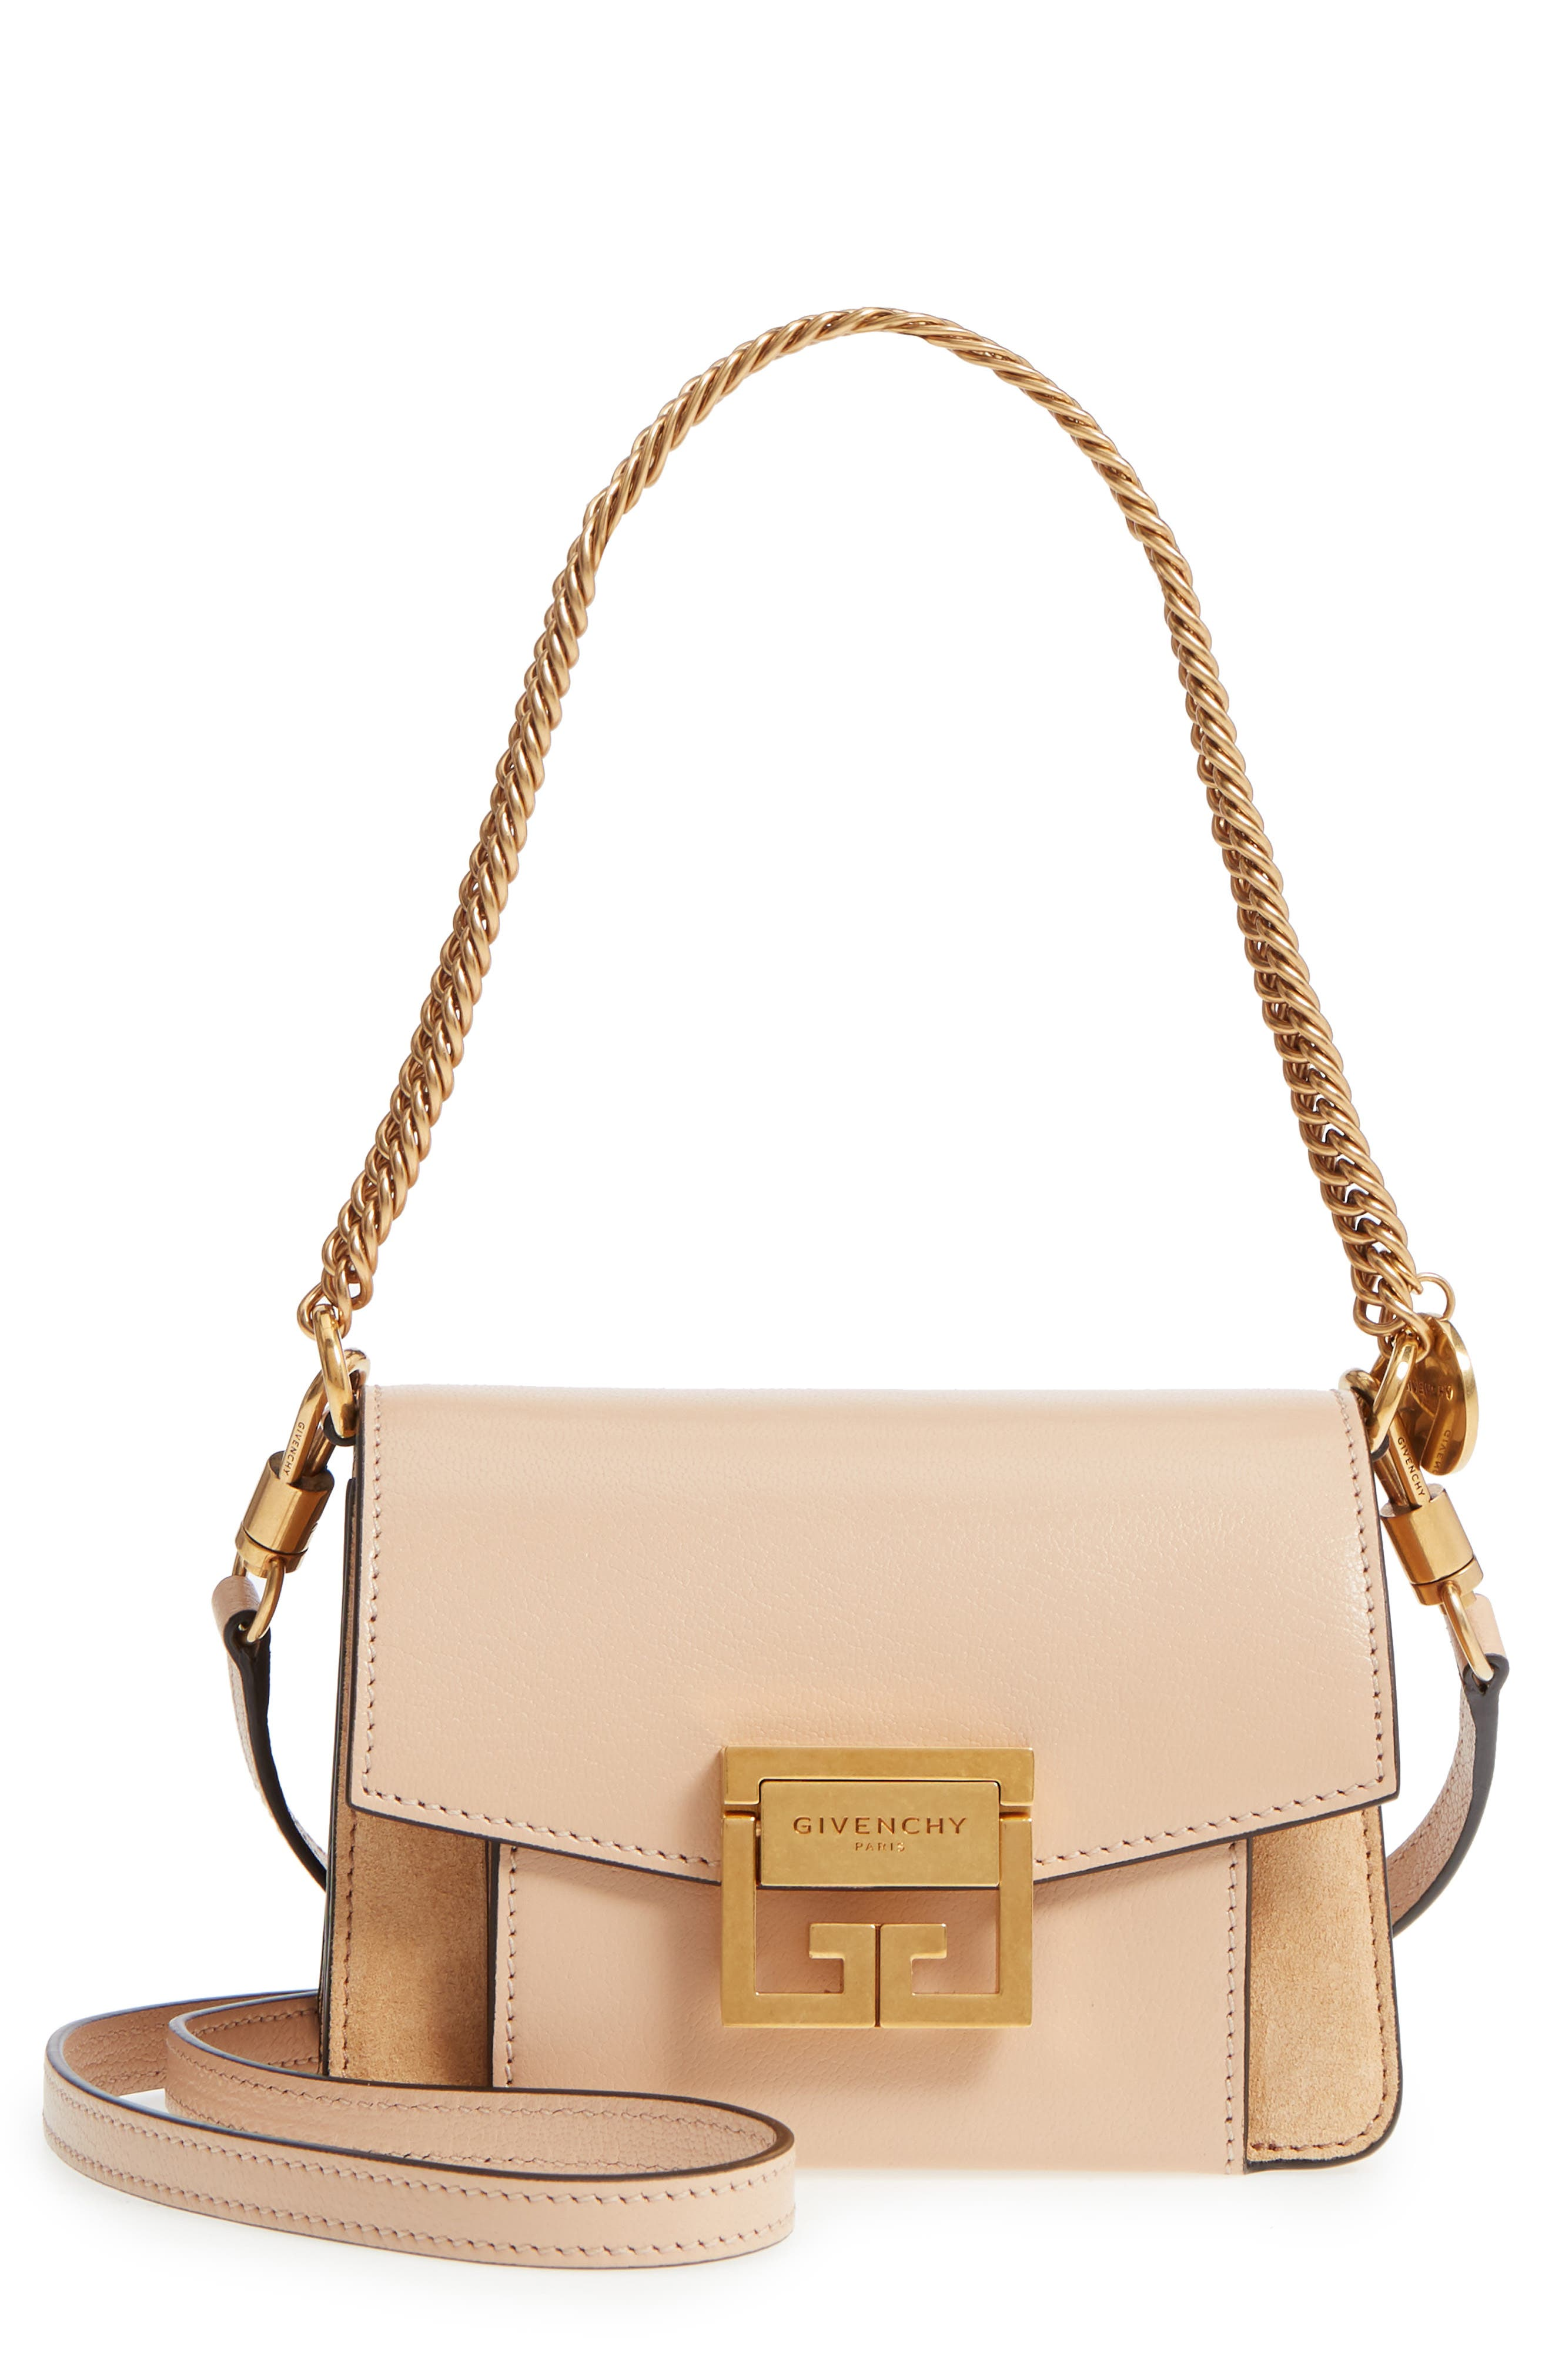 Mini GV3 Leather & Suede Crossbody Bag,                             Main thumbnail 1, color,                             NUDE/ LIGHT BEIGE